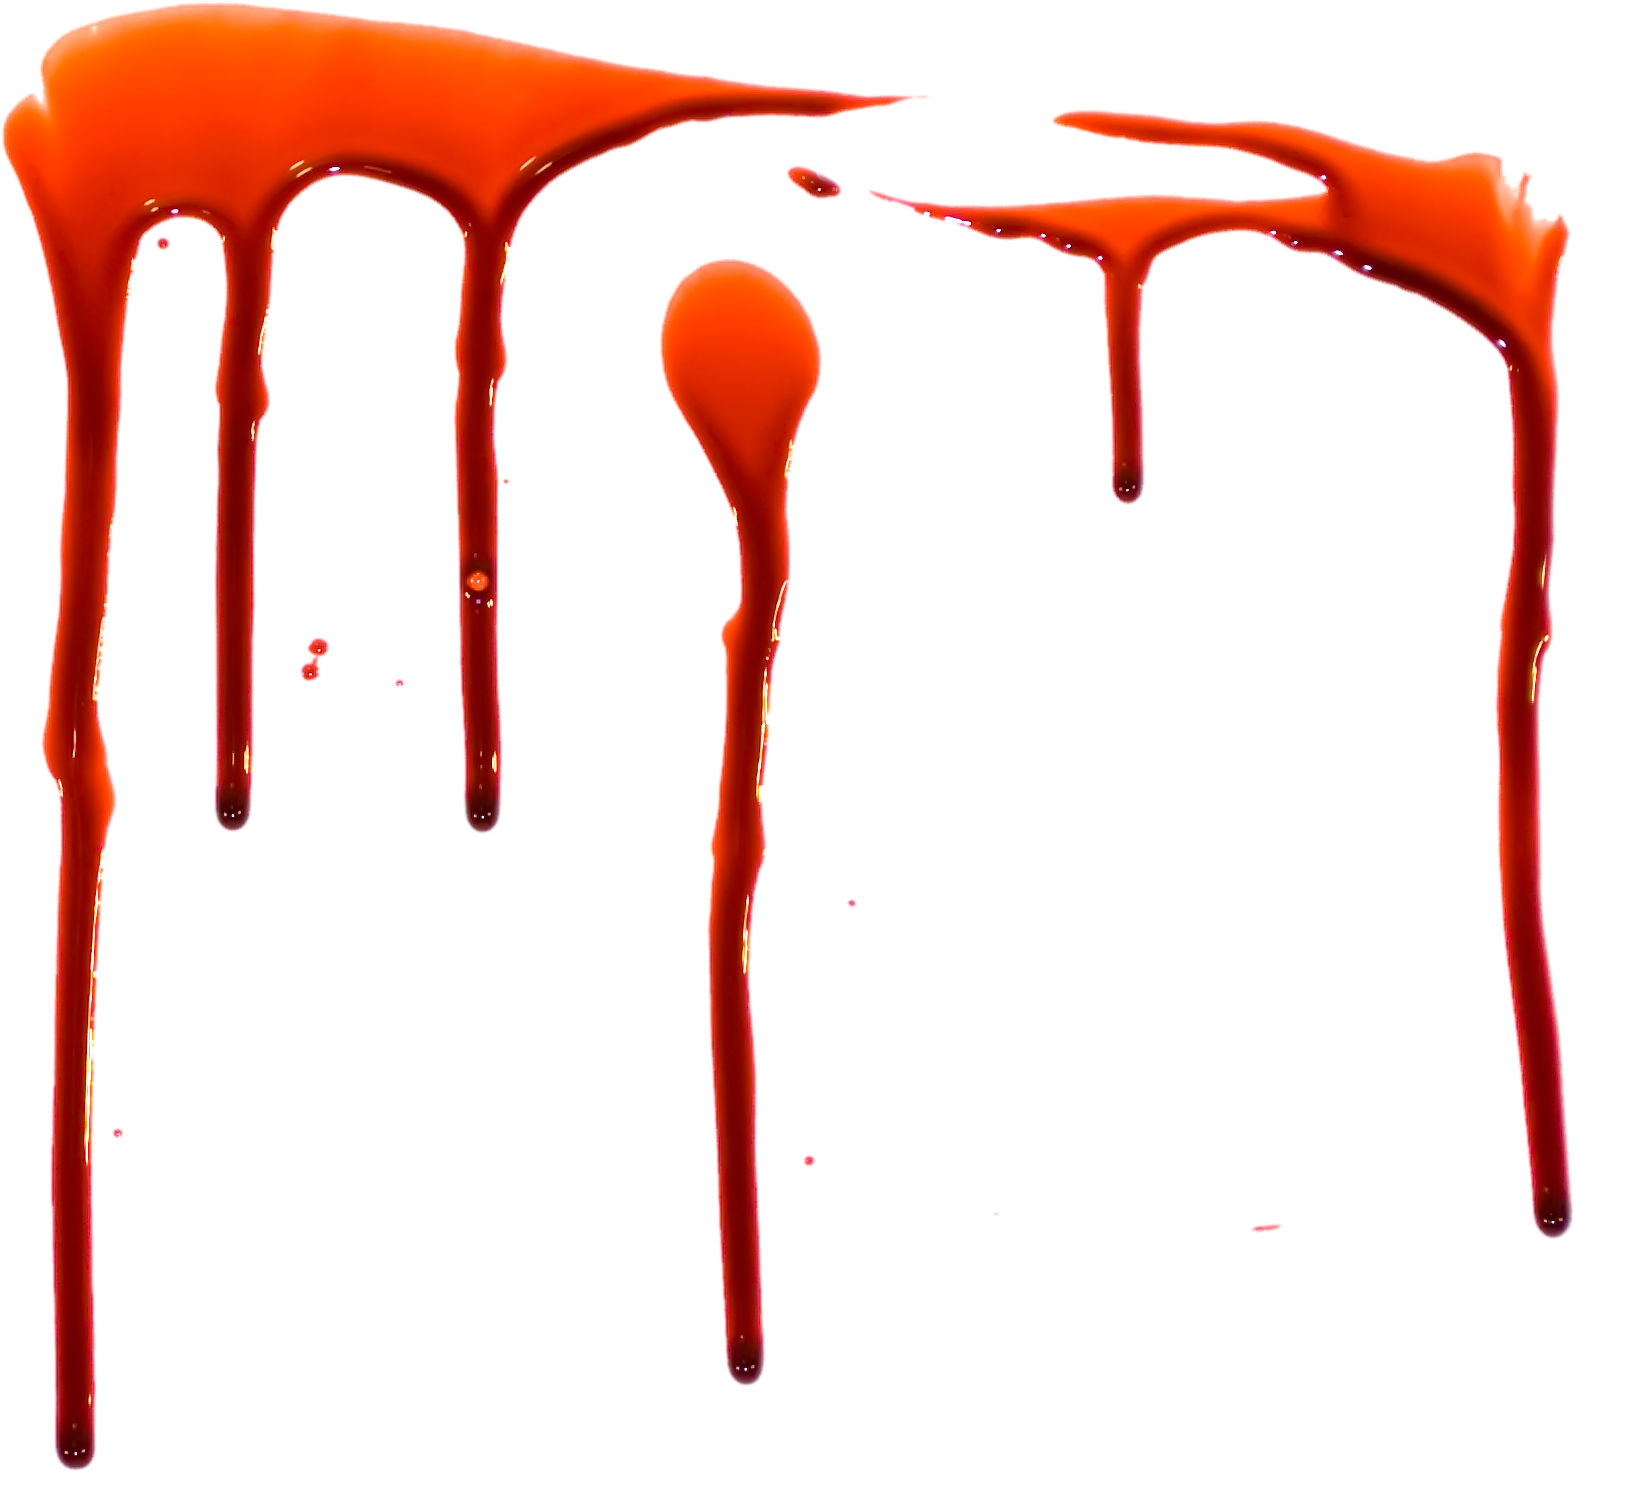 blood drip, dripped blood images download #8355